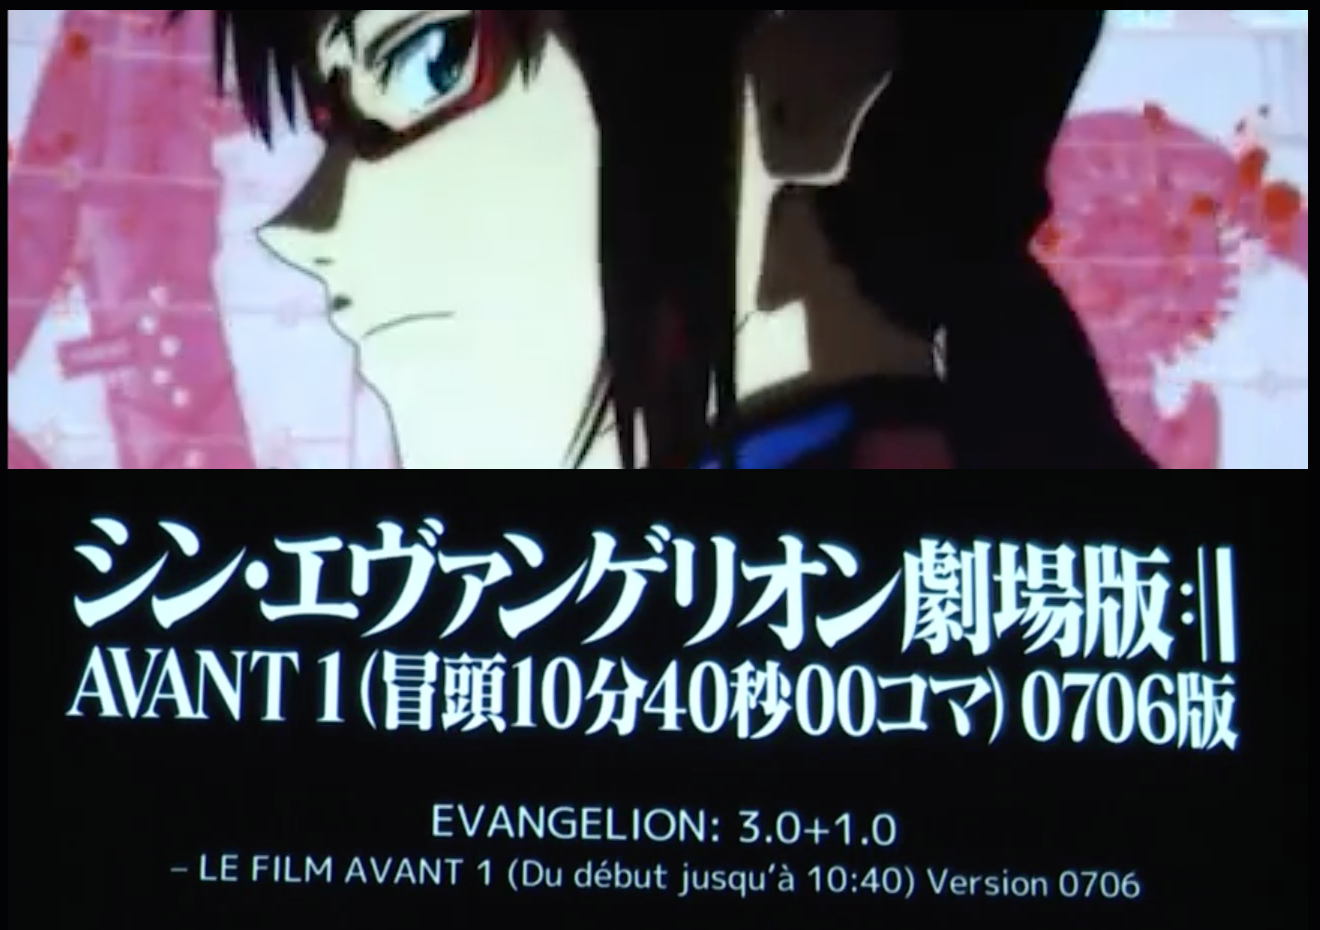 Watch The First 10 Minutes Of Evangelion 3 0 1 0